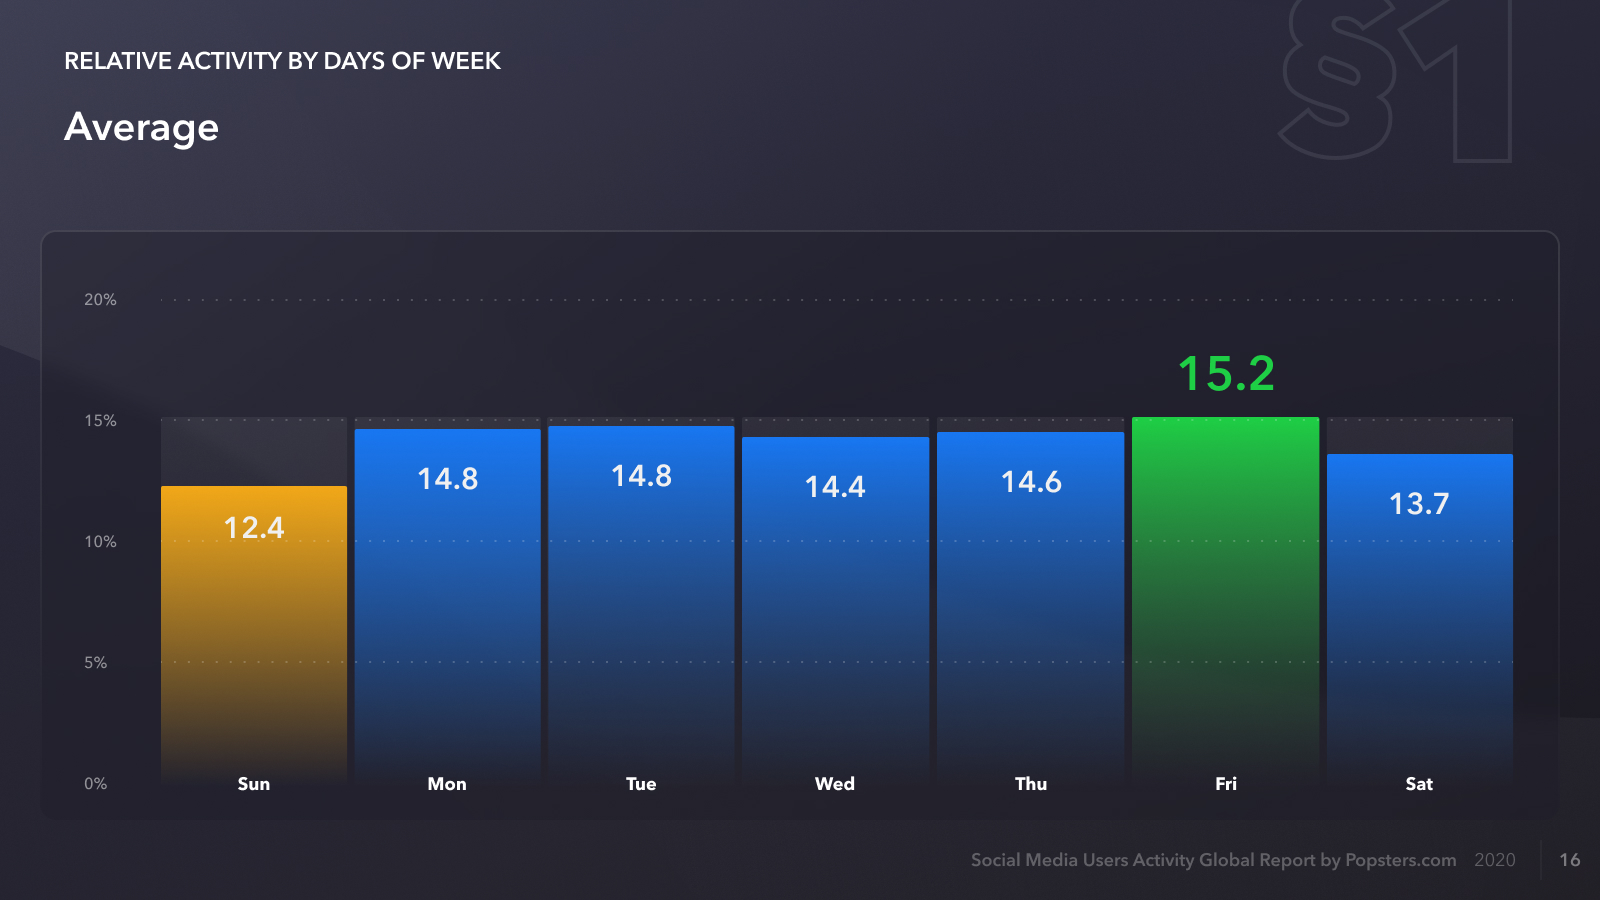 Average relative activity by days of week for all Social media's in 2020